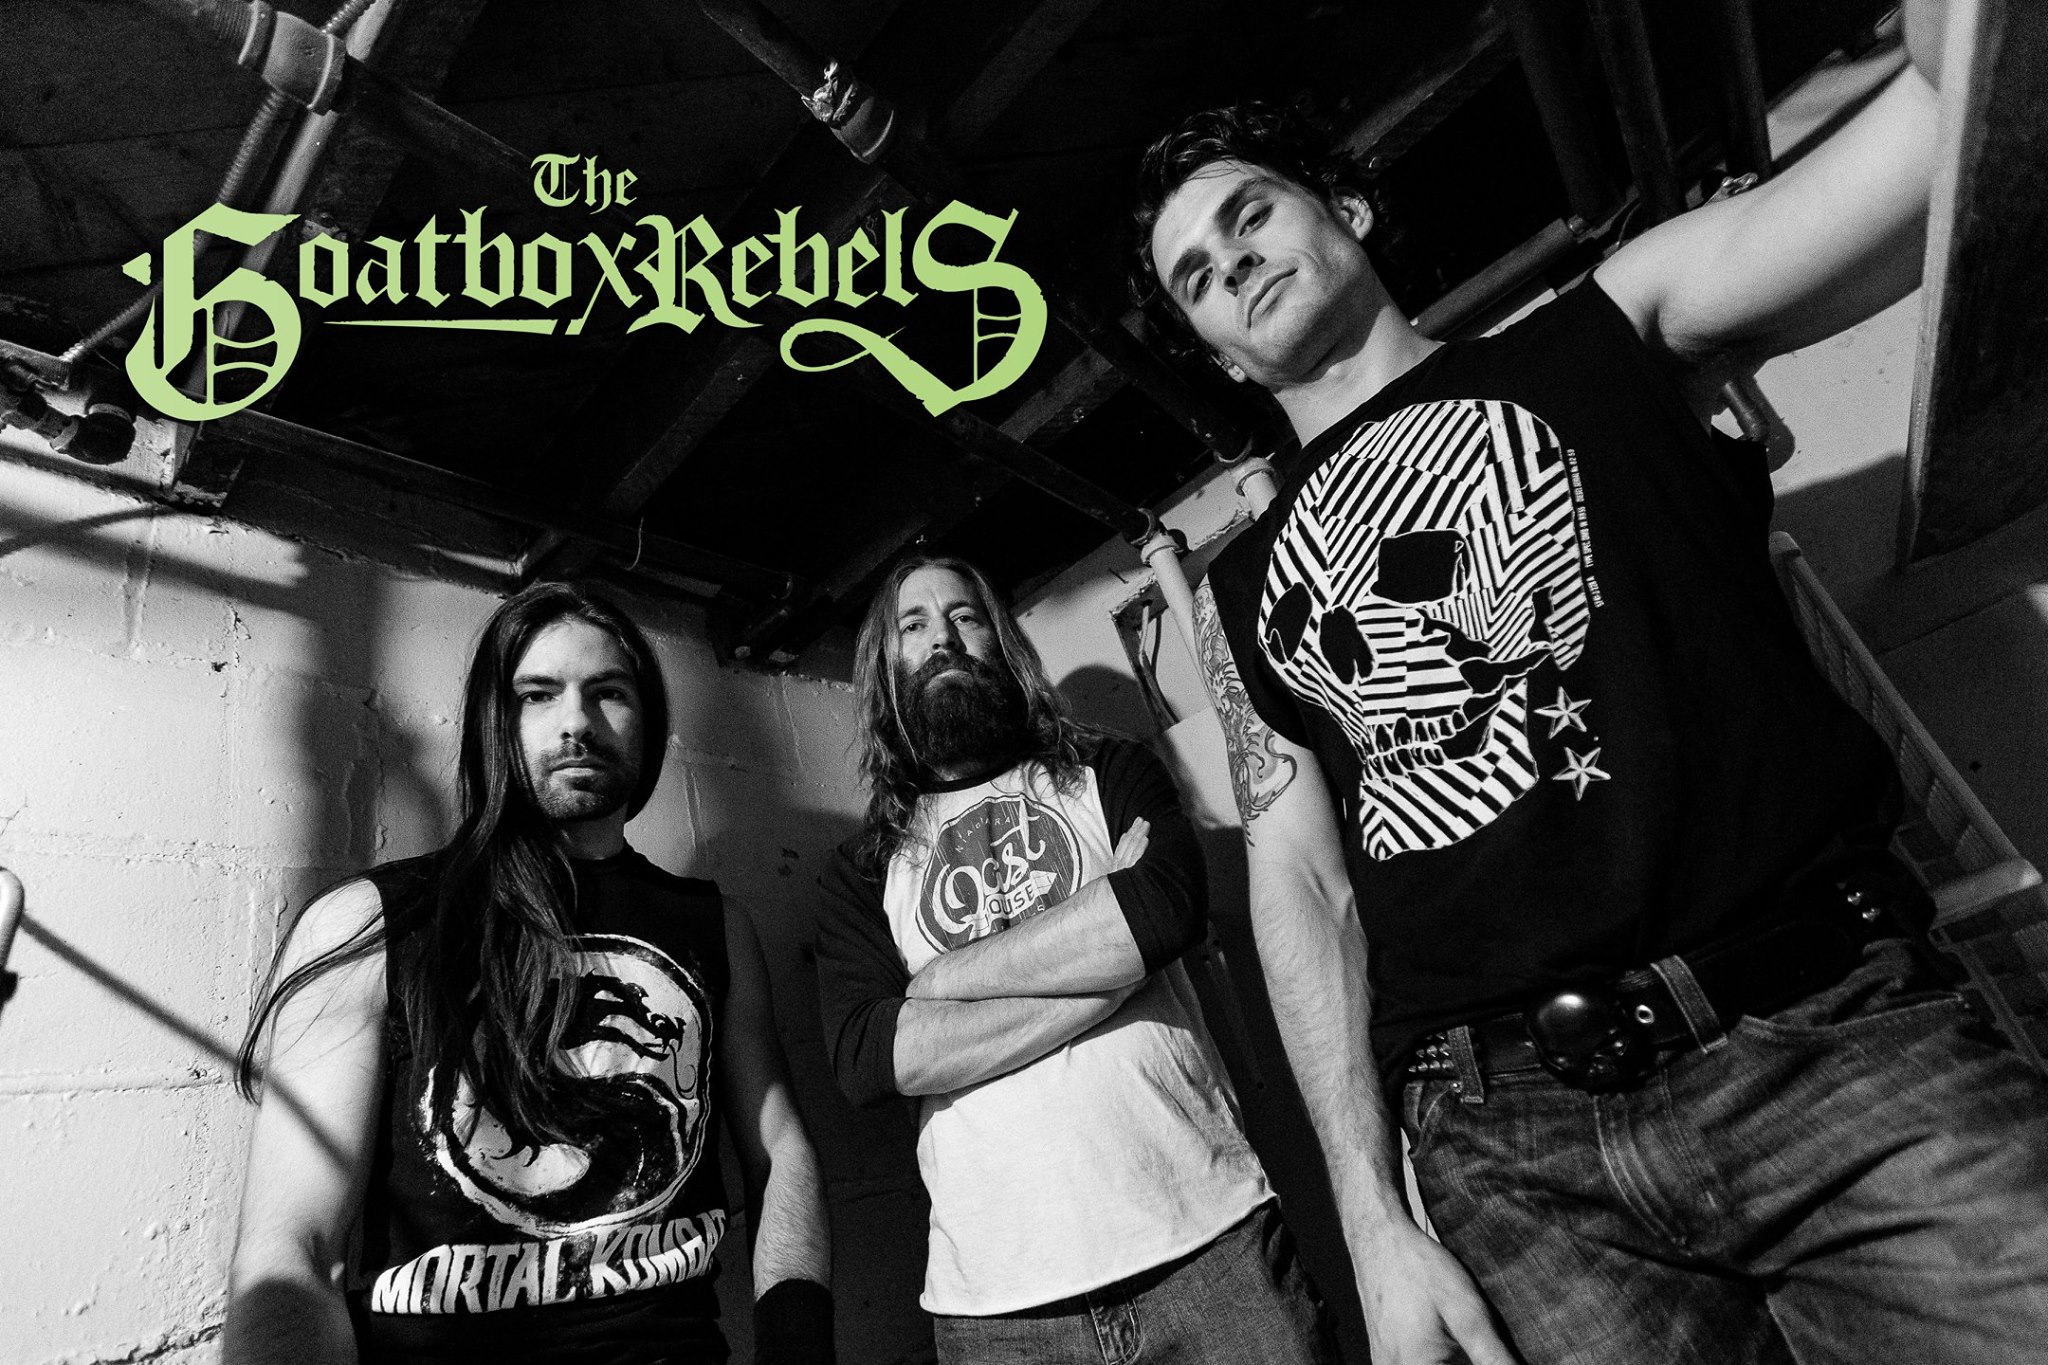 The Goatbox rebels